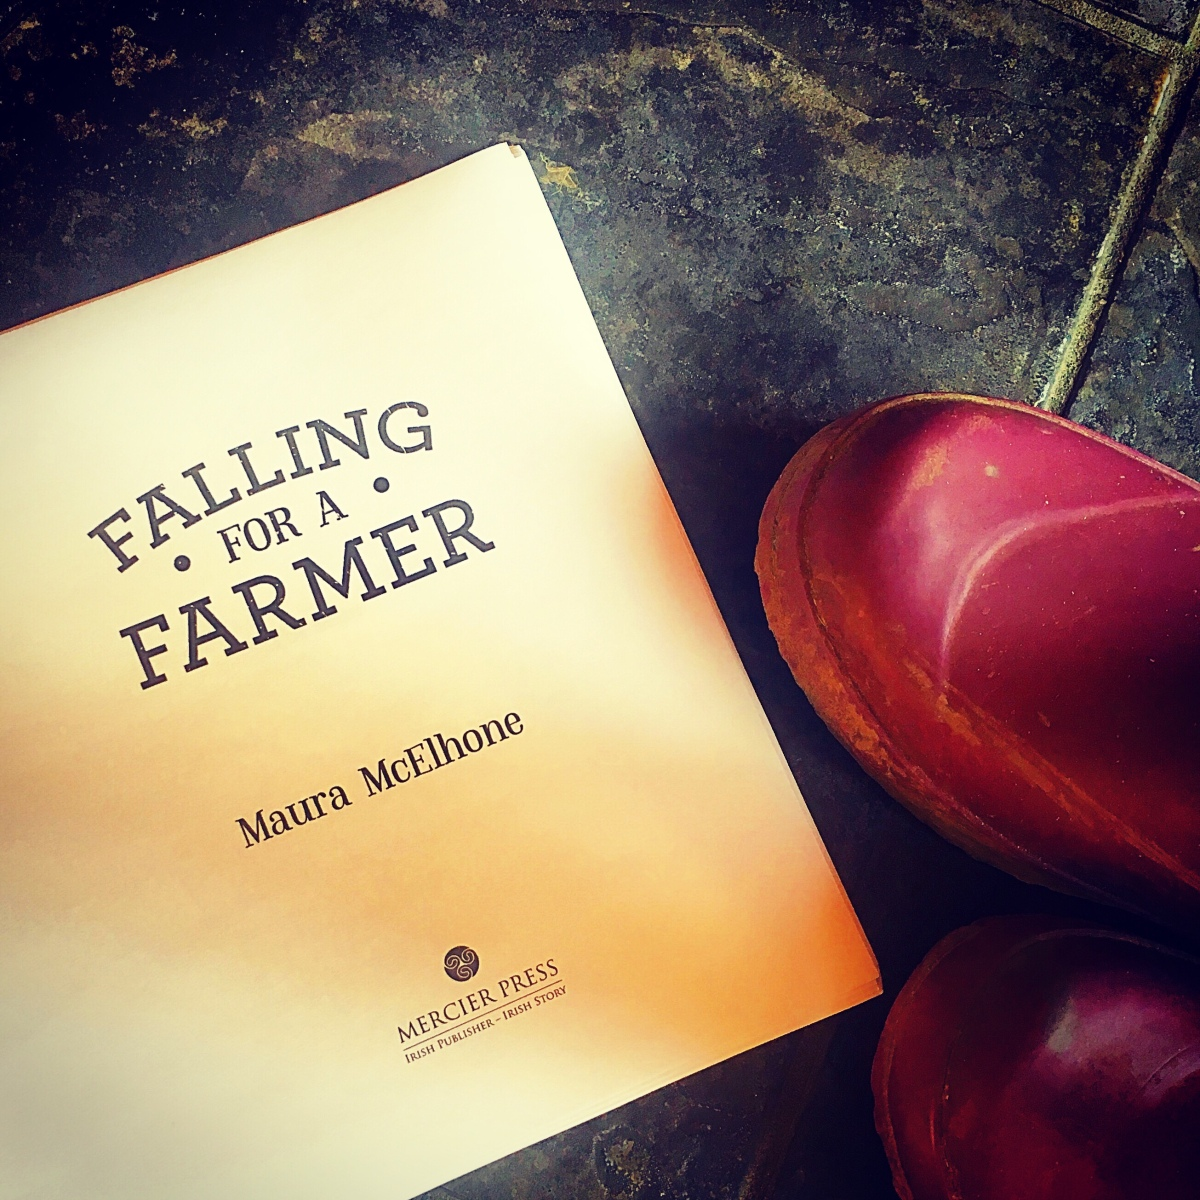 Falling for a Farmer: Coming to a Bookshop Near You